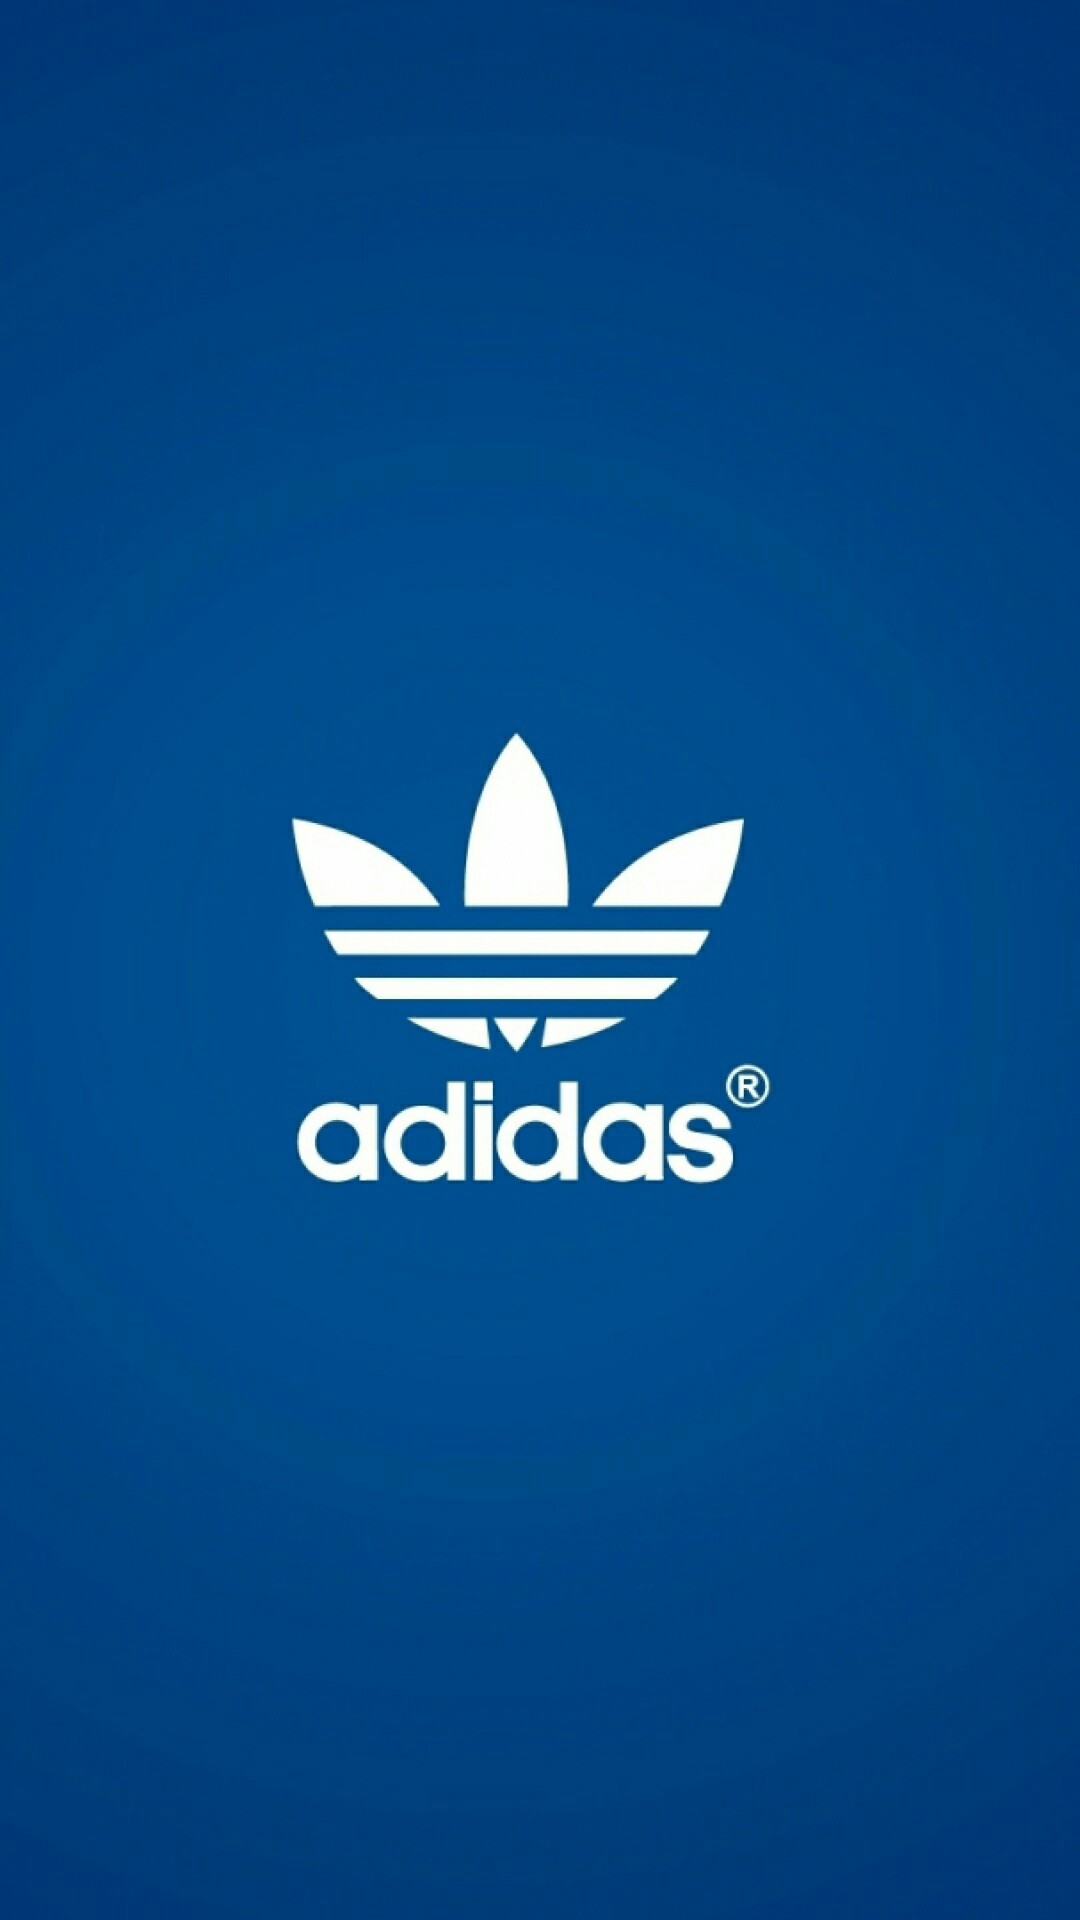 Explore Adidas Logo, Wallpaper For Iphone, and more!